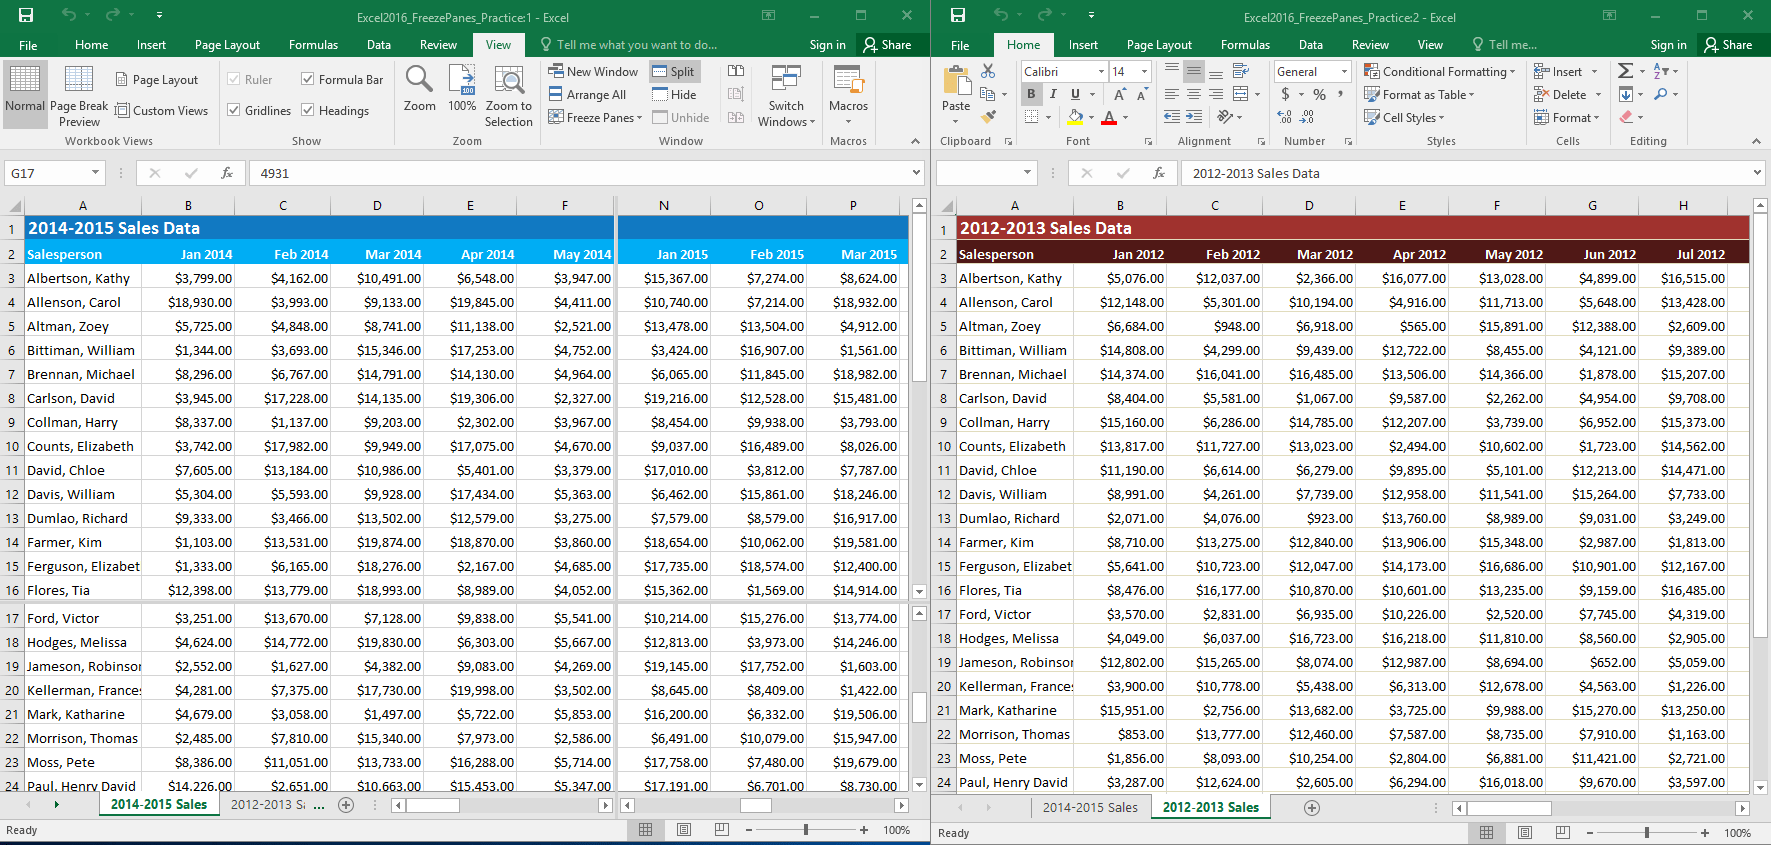 Excel 2016: Freezing Panes and View Options